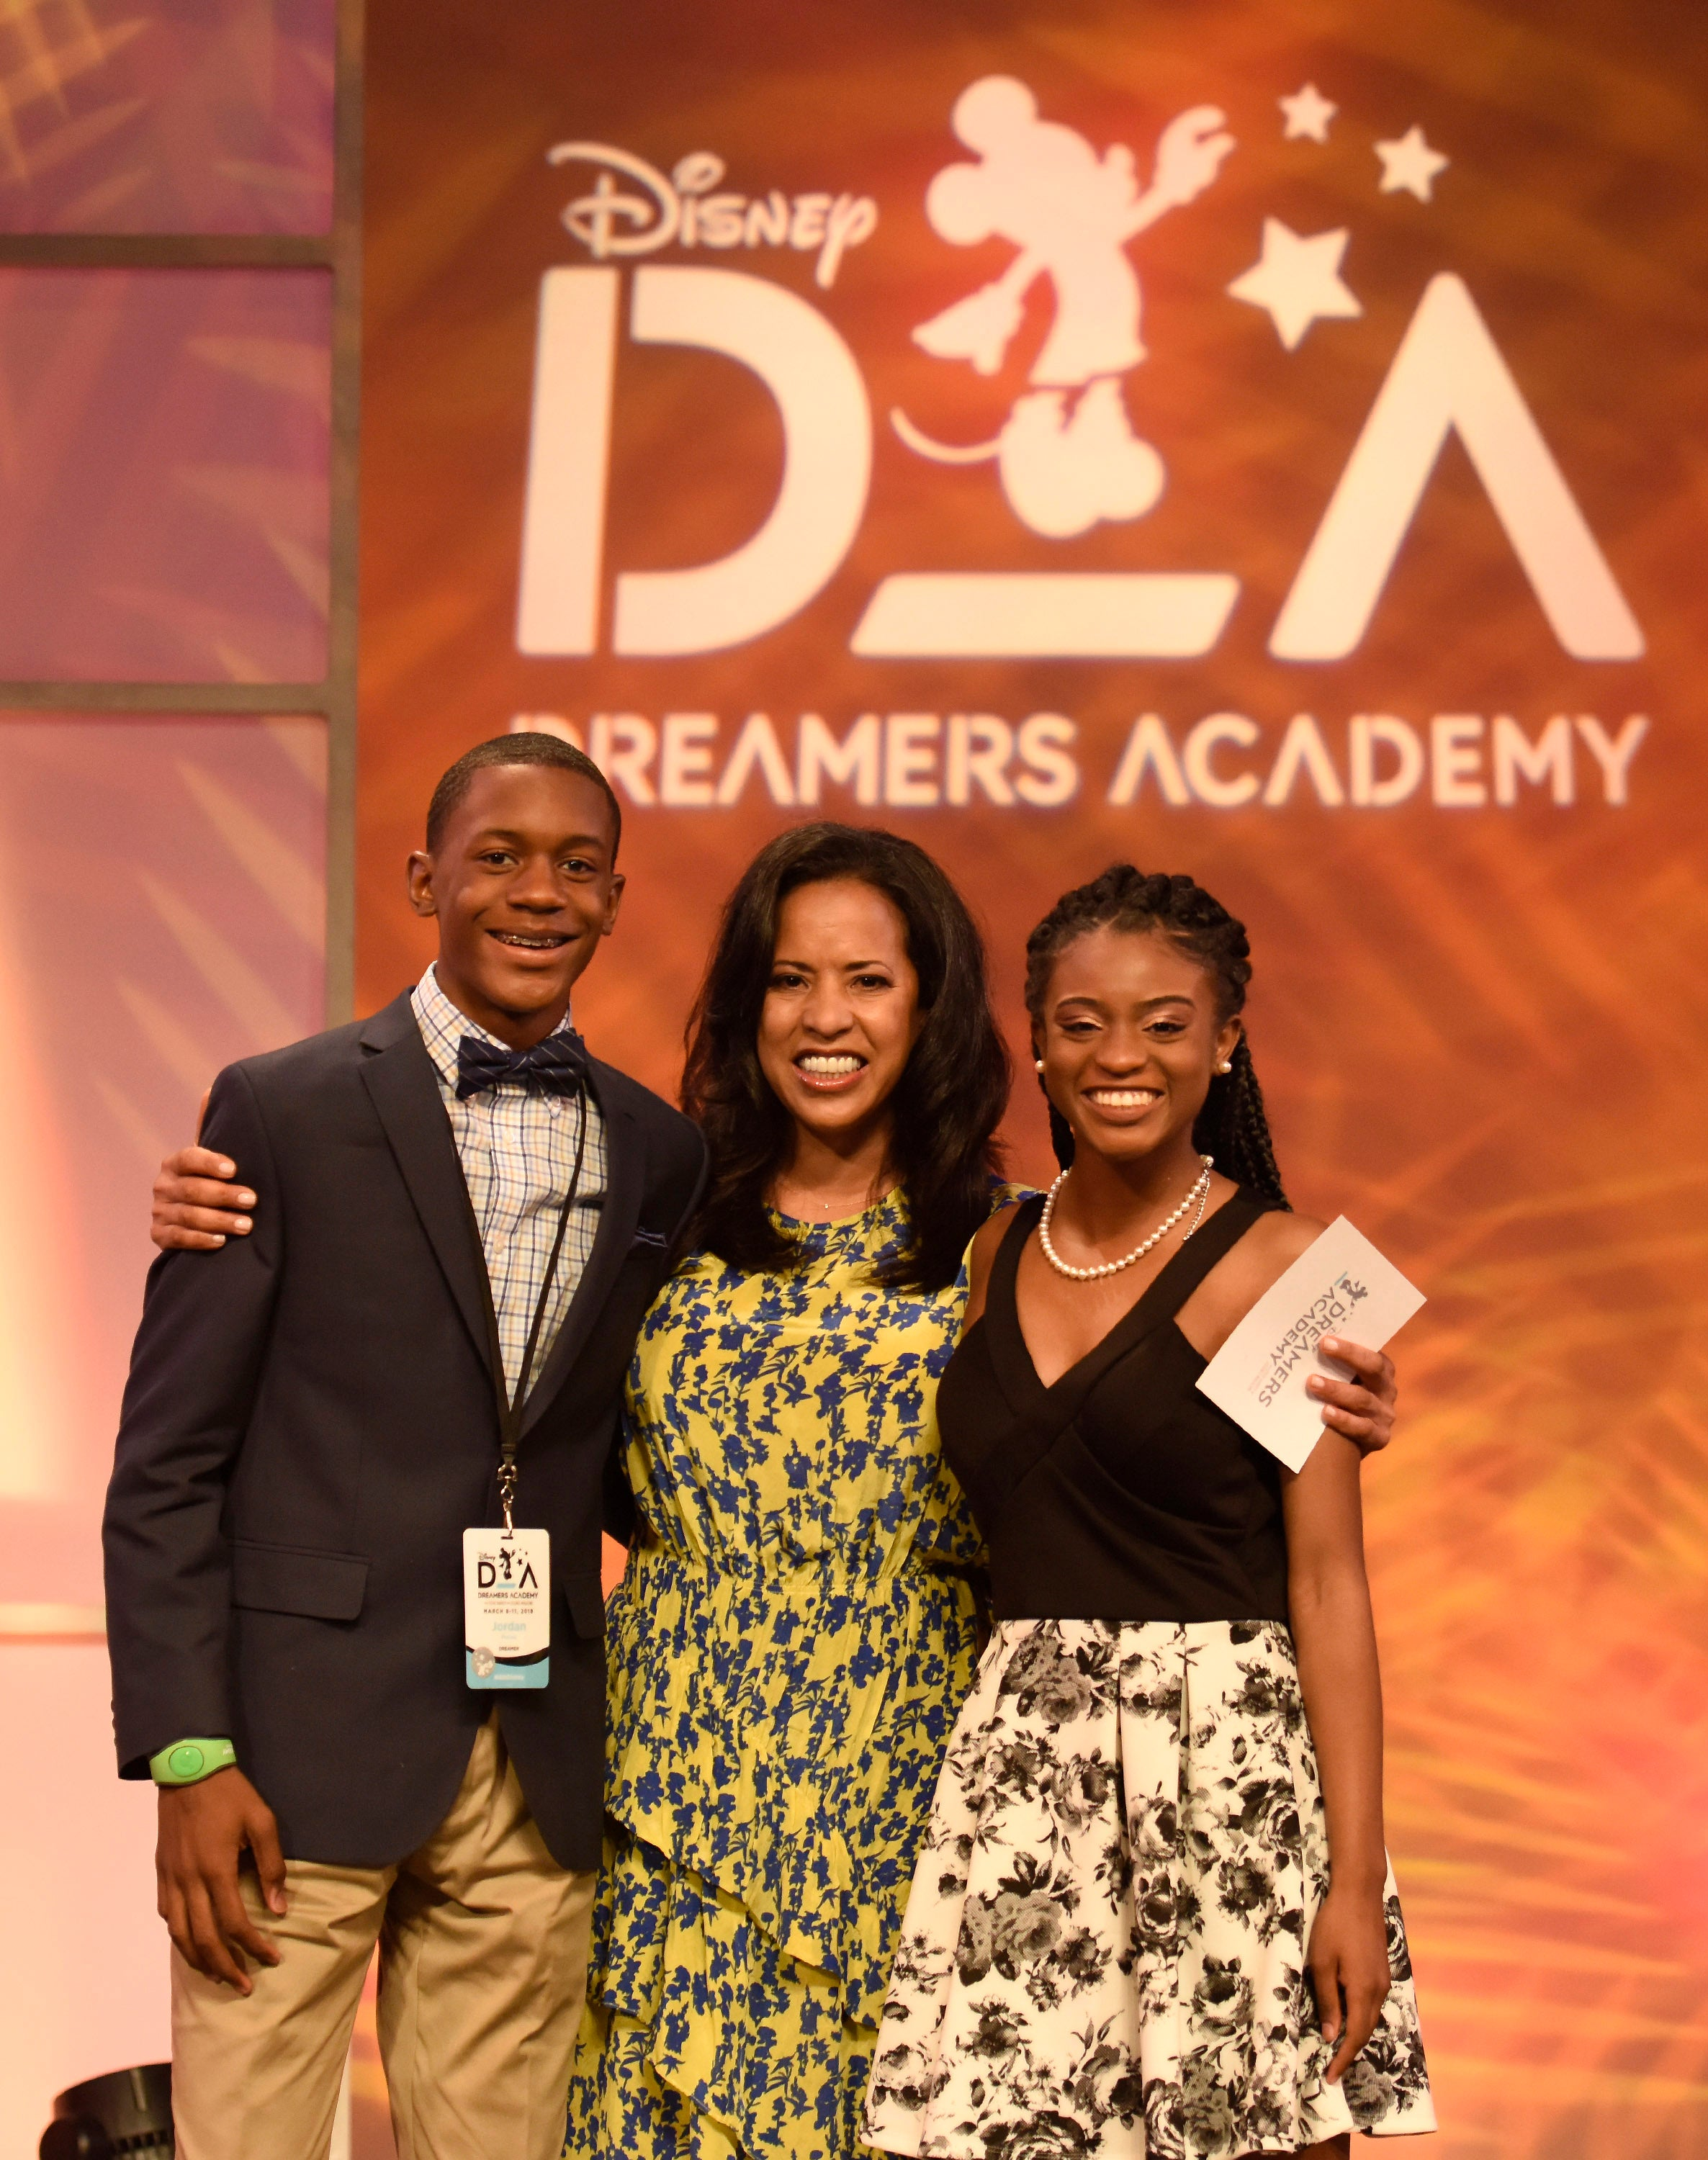 ESSENCE Communications President Michelle Ebanks On The Importance Of The Disney Dreamer's Academy